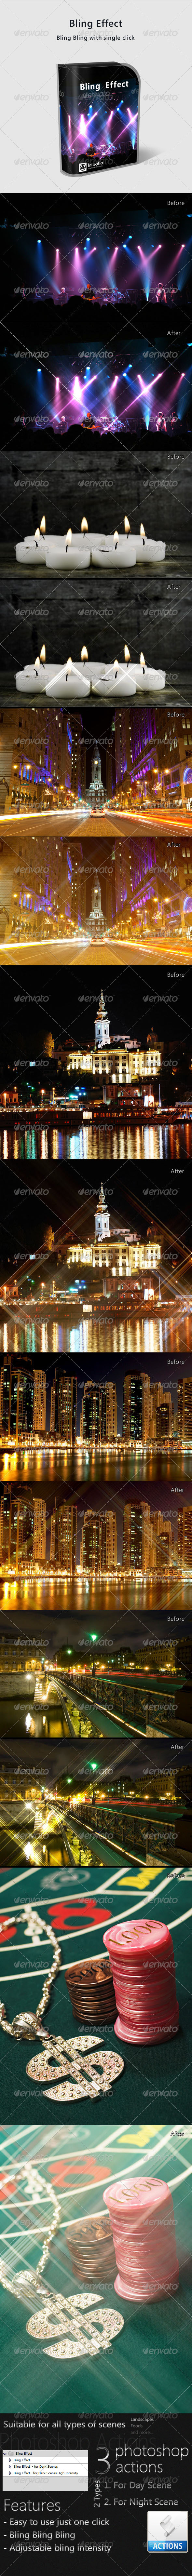 GraphicRiver Bling Effect Action Pack 234571